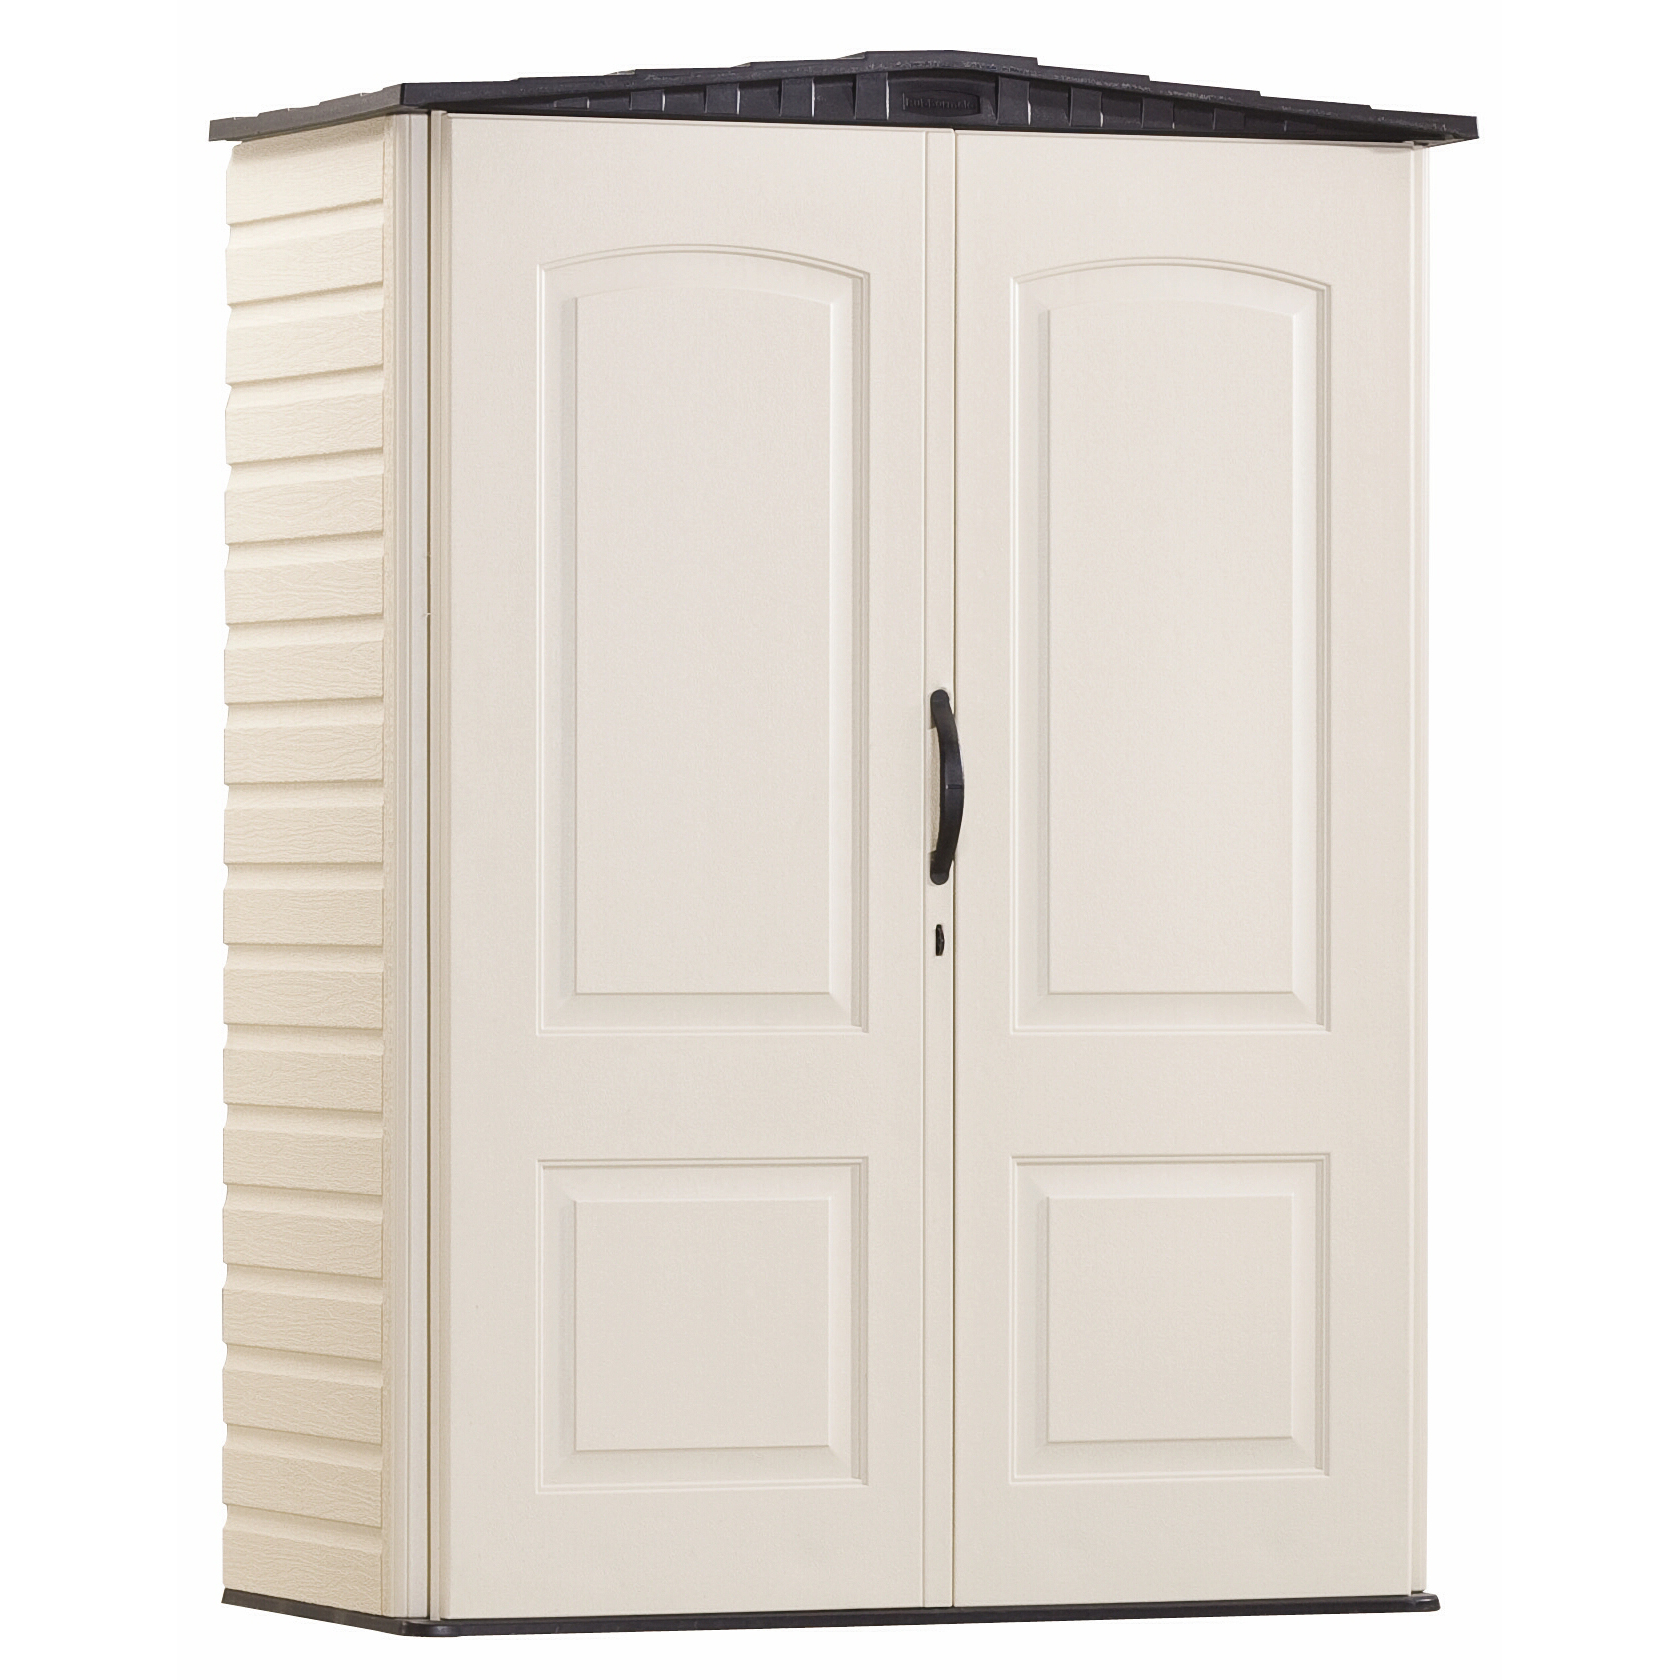 Rubbermaid FG5L1000SDONX 4.3' W X 2' D X 6' H Small Vertical Shed